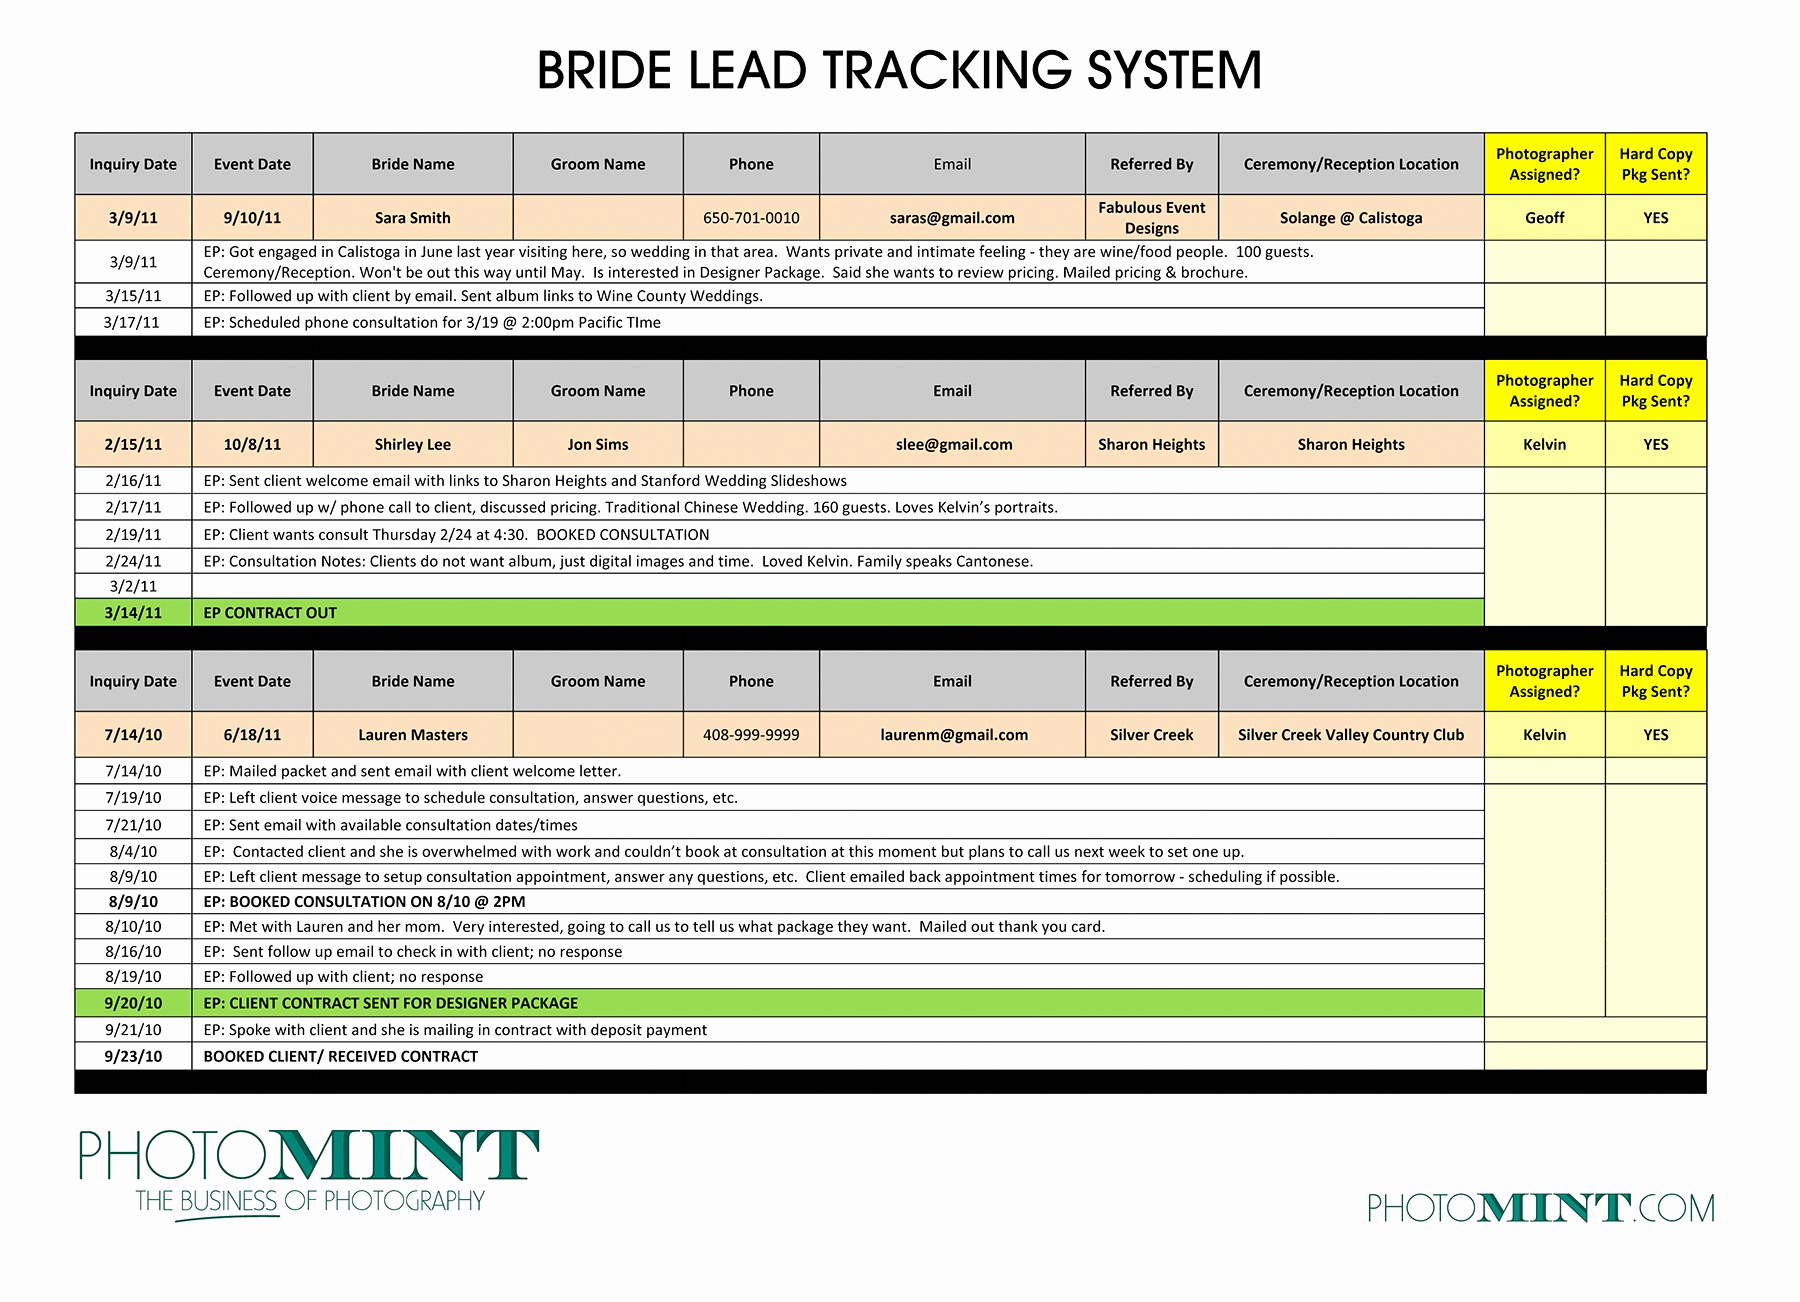 Rent Tracking Spreadsheet Intended For Lead Tracking Spreadsheet Luxury Rent Payment Tracker Spreadsheet